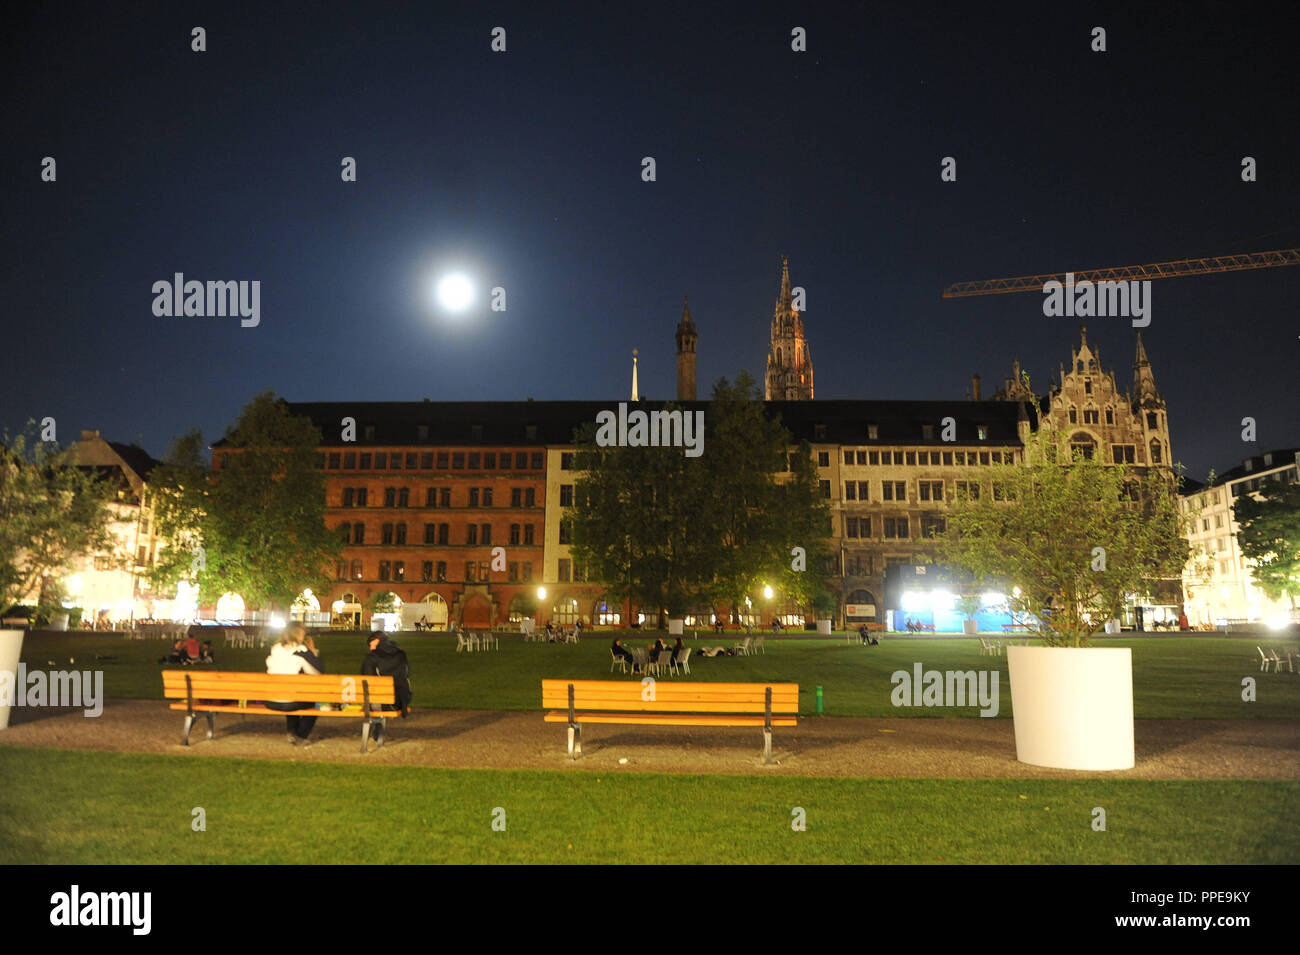 Moon rising above the green area at the Marienhof in Munich, with the Town Hall in the background. - Stock Image